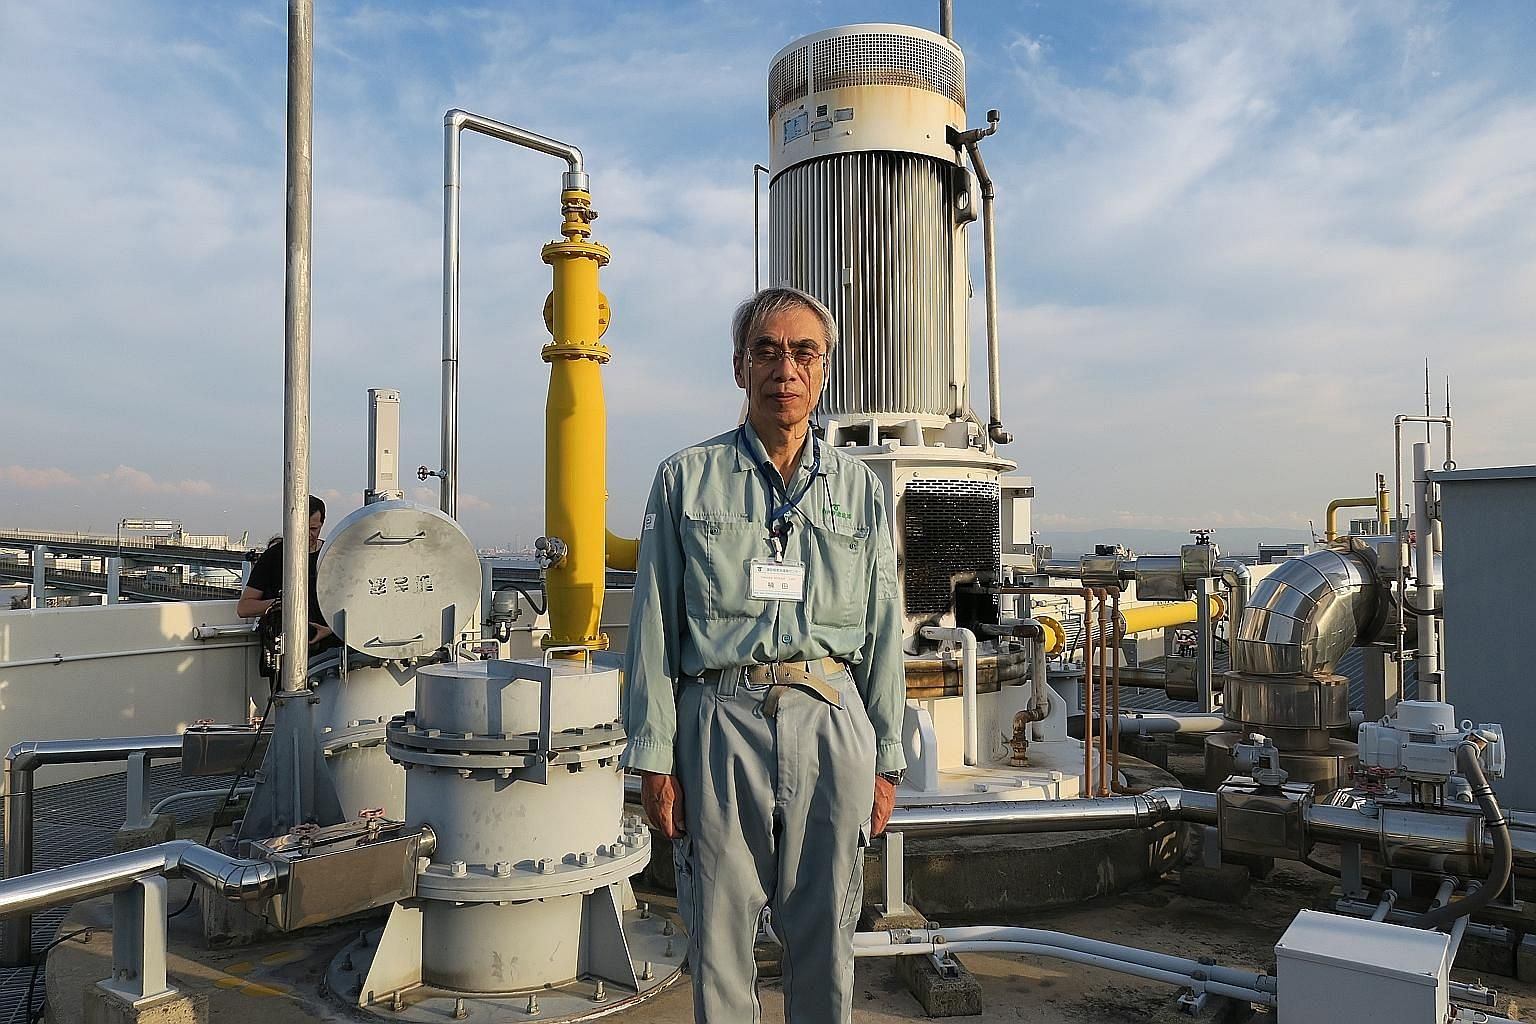 Mr Takashi Kusuda, an employee at the Higashinada sewage treatment plant, in front of a facility that refines city sewage into biogas.